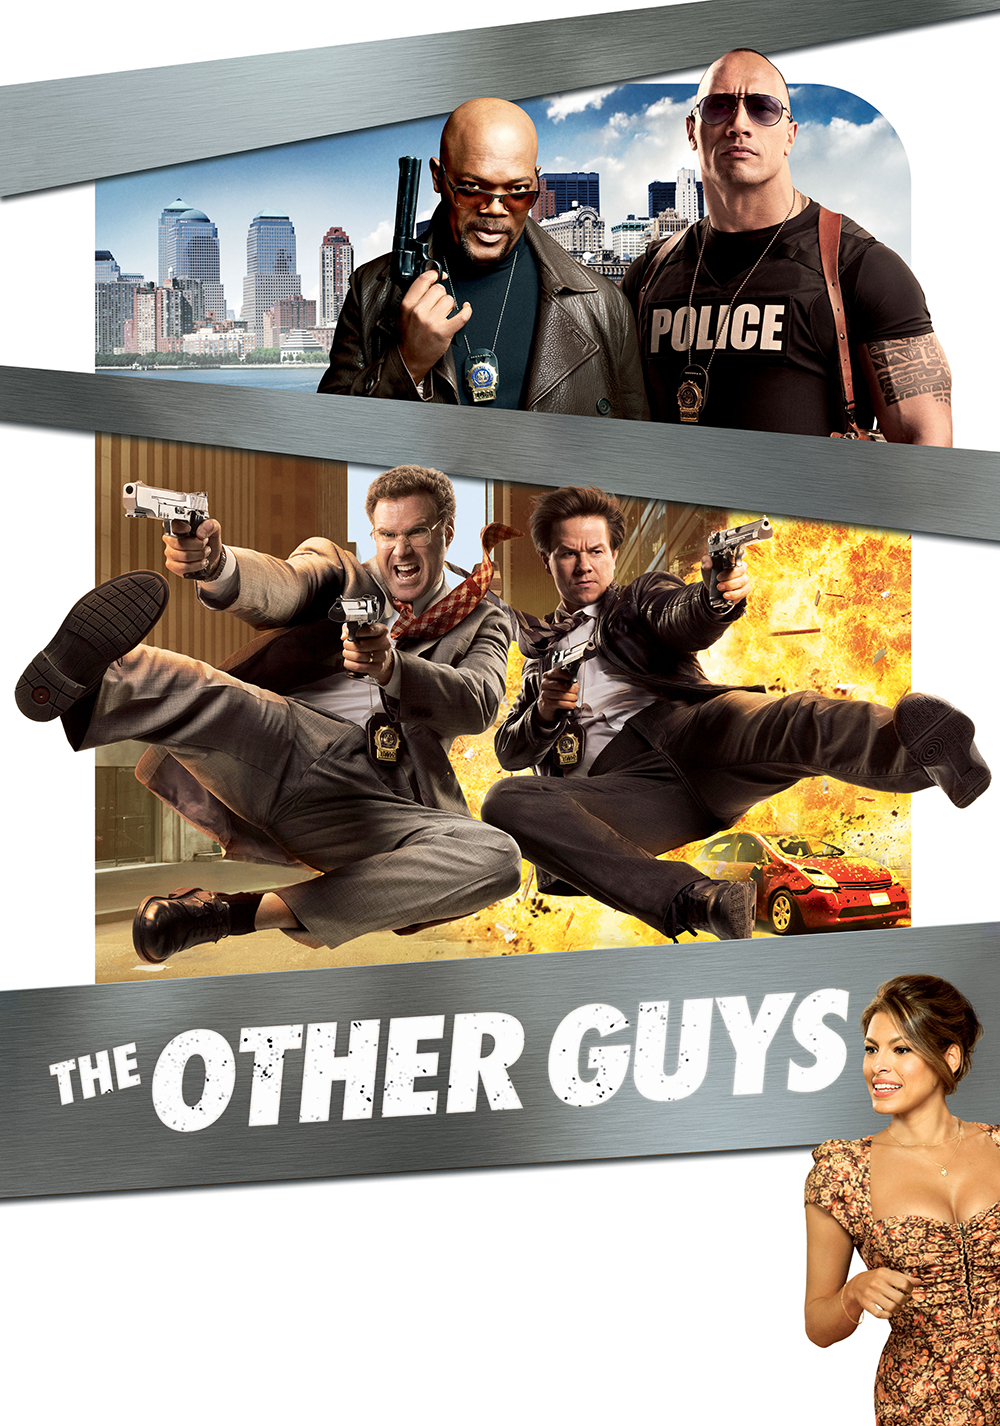 THE OTHER GUYS MOVIE TAMIL DUBBED HD